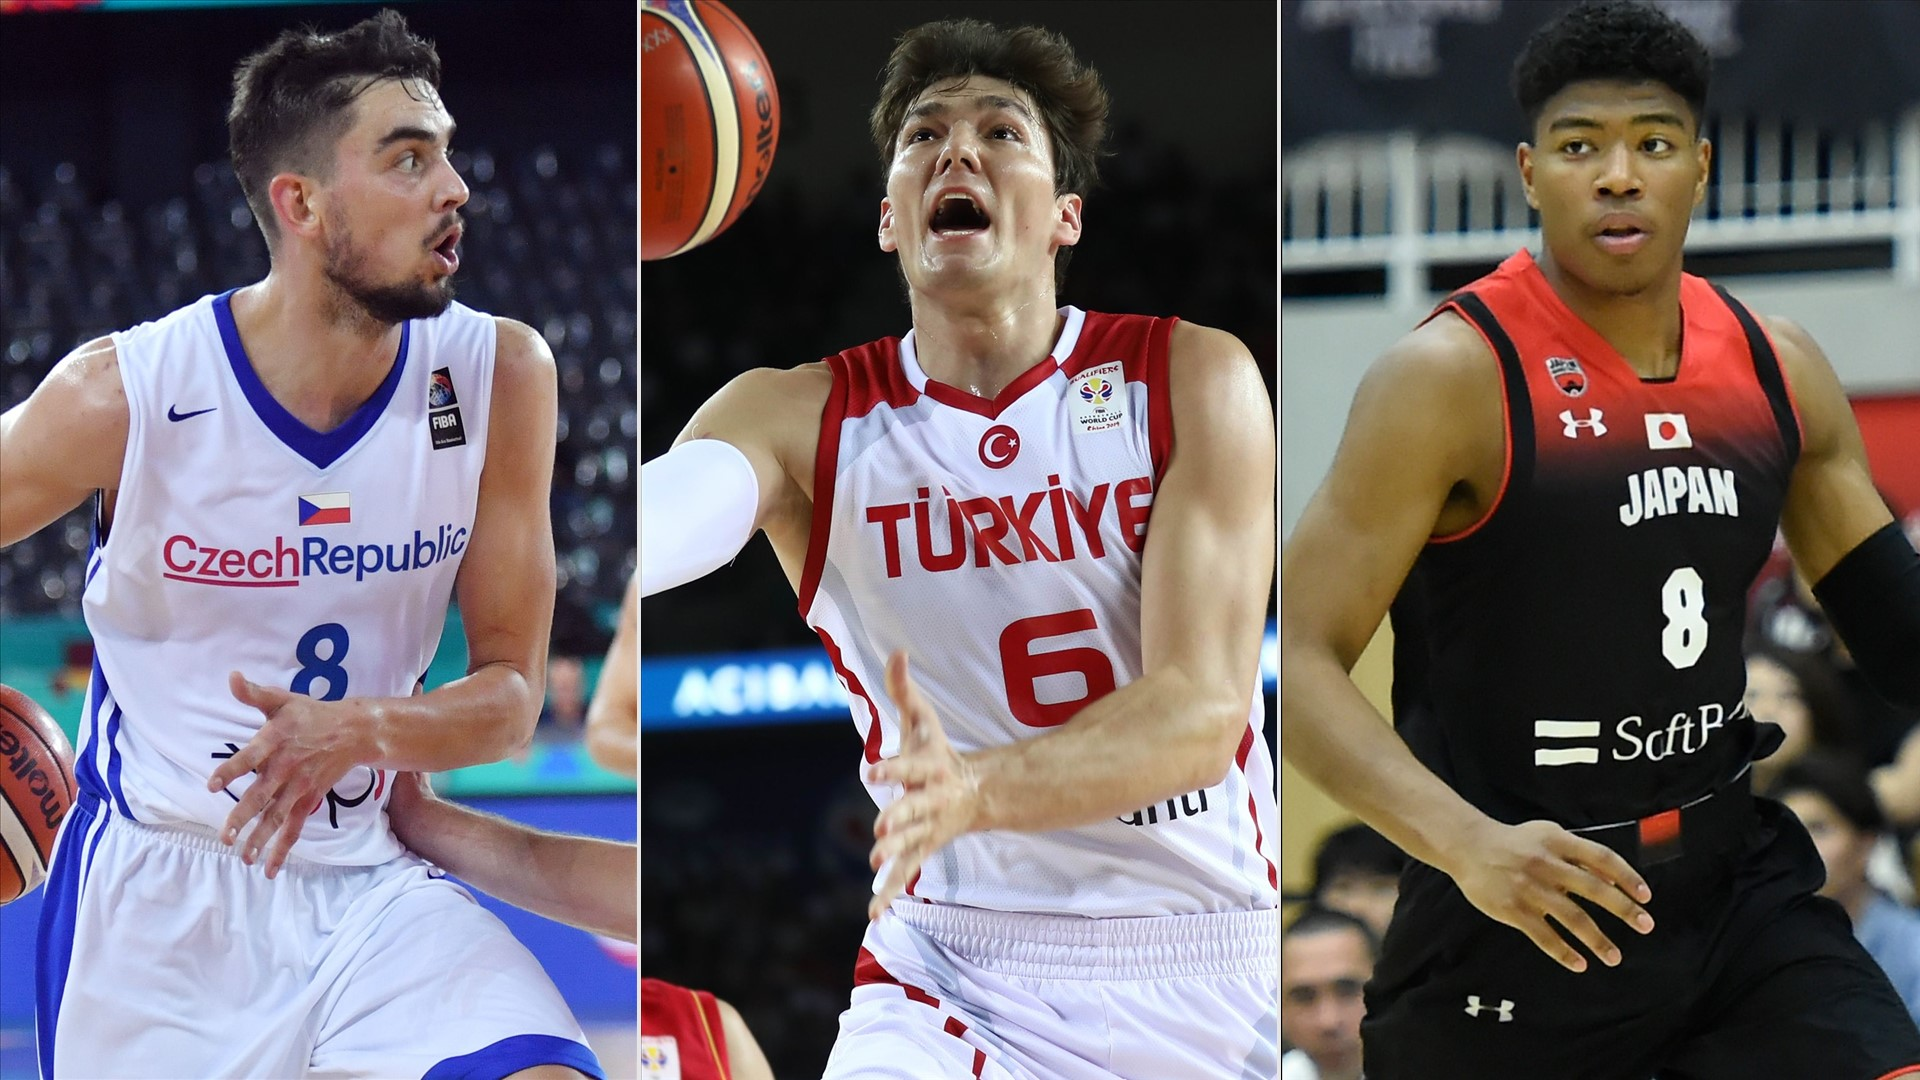 FIBA World Cup 2019: Who will Team USA face during pool play? Schedule, rosters and analysis